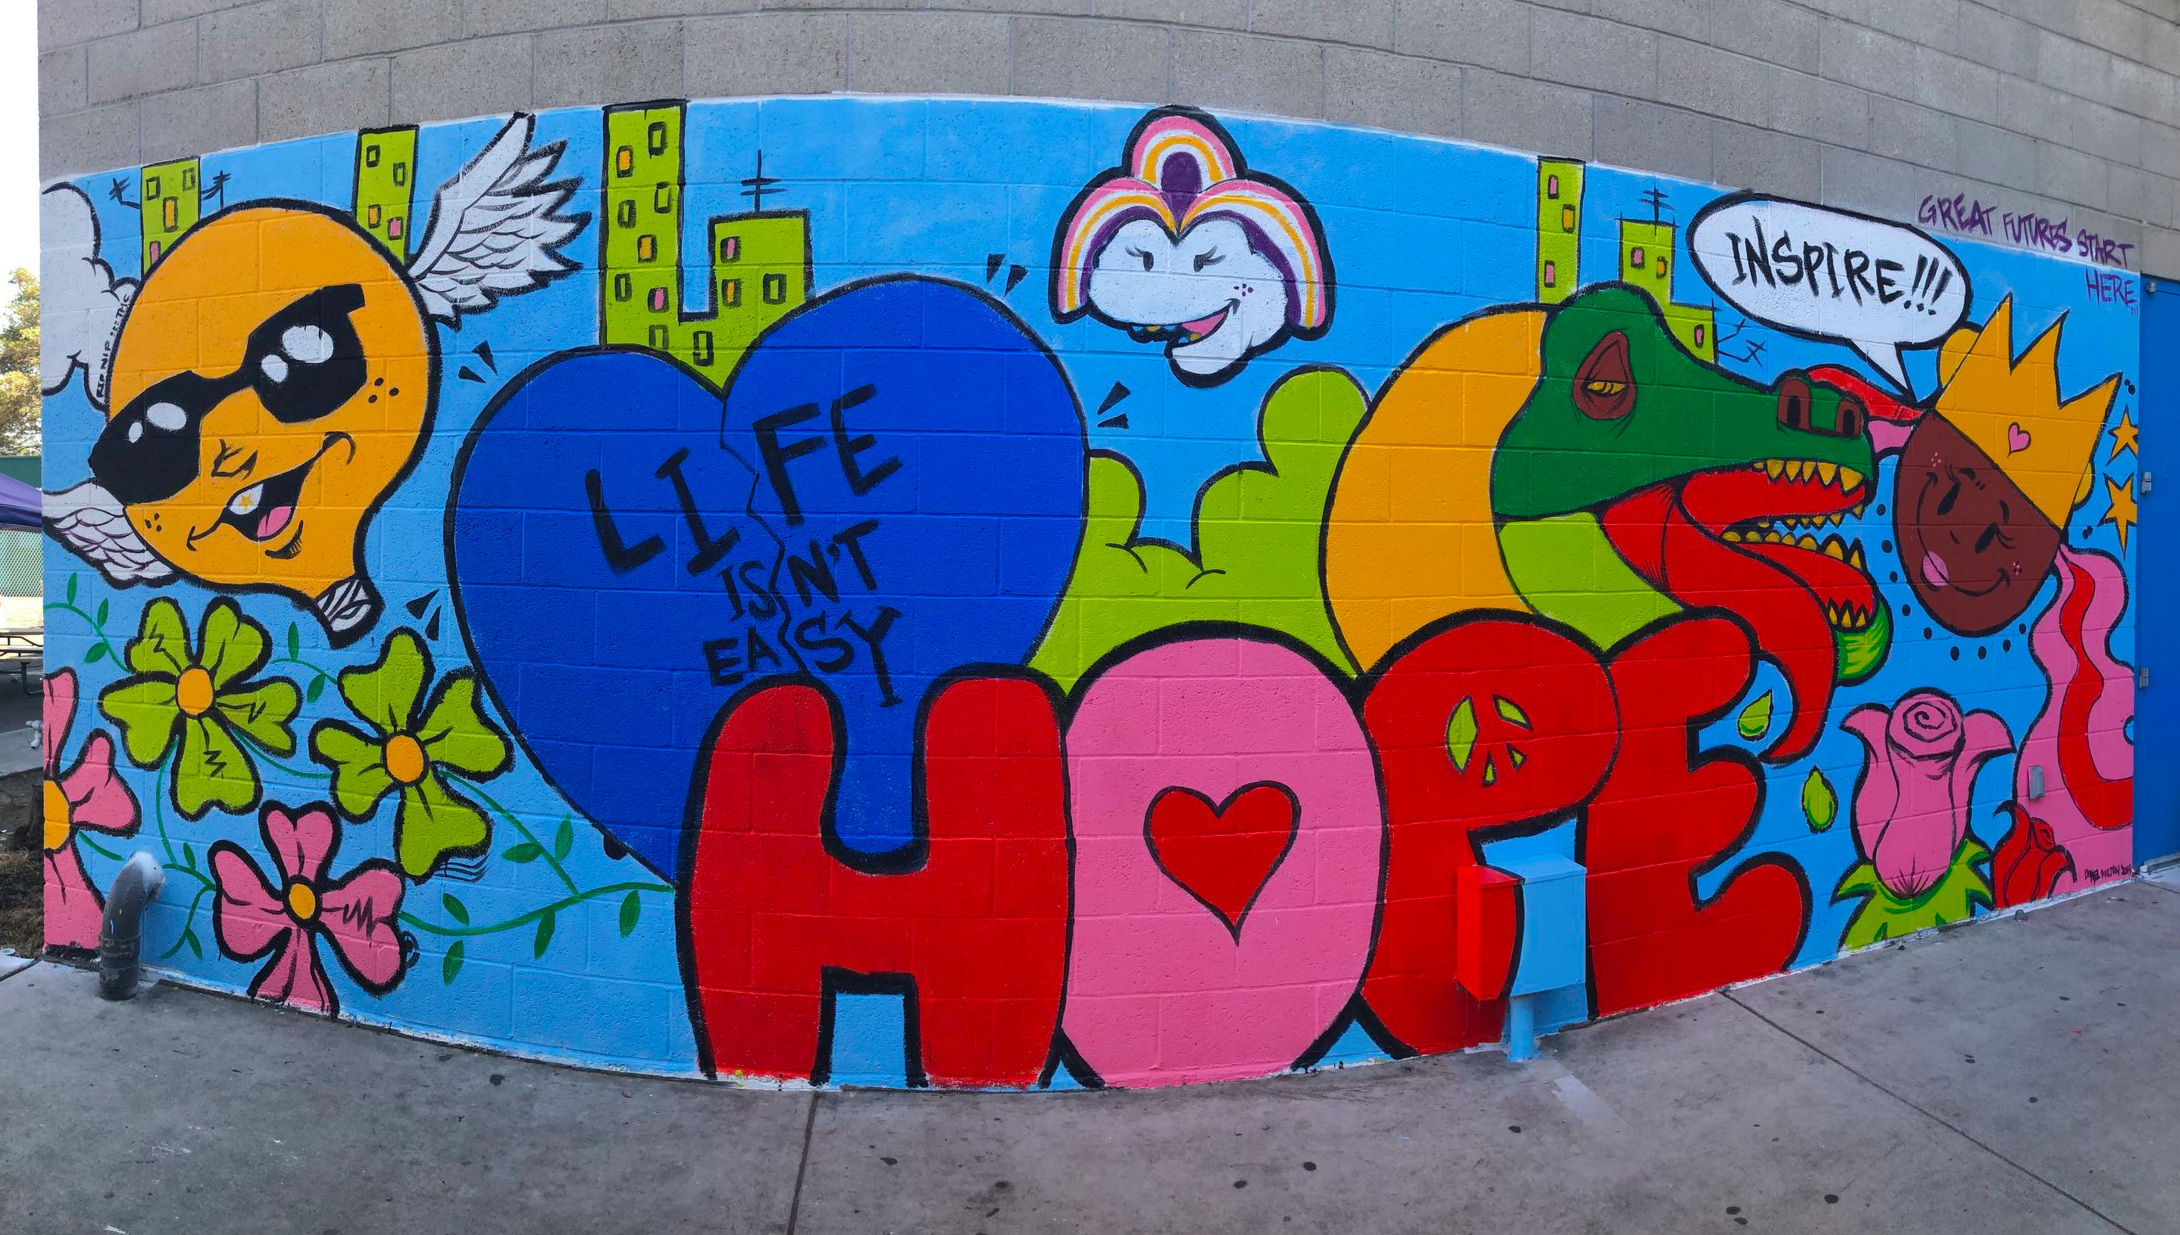 The final mural created by Lionel Milton and club members of the BGCMLA Watts-Willowbrook Clubhouse!